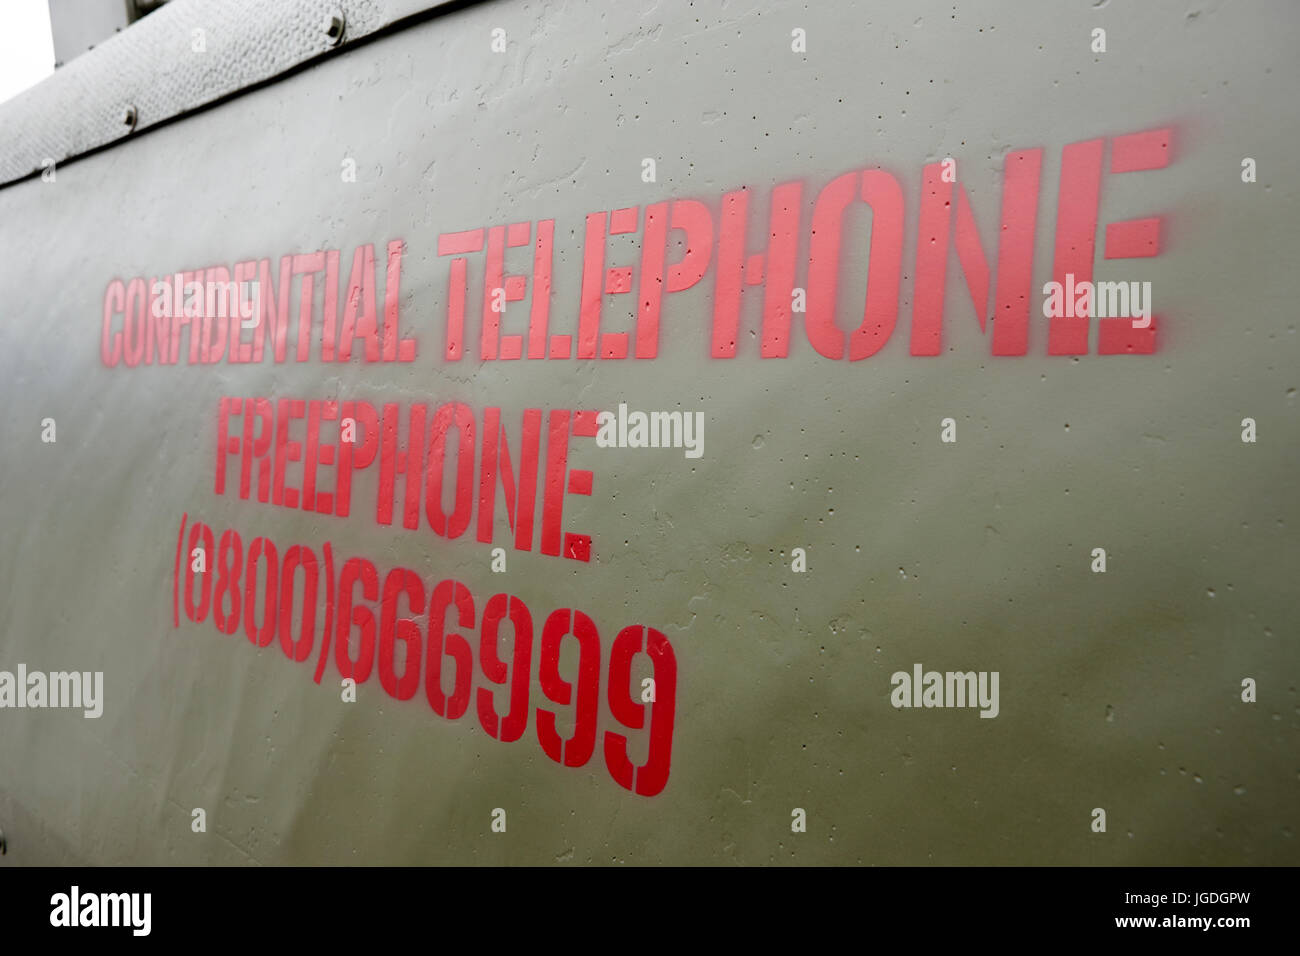 confidential telephone freephone number painted on the side of a british army landrover northern ireland troubles - Stock Image